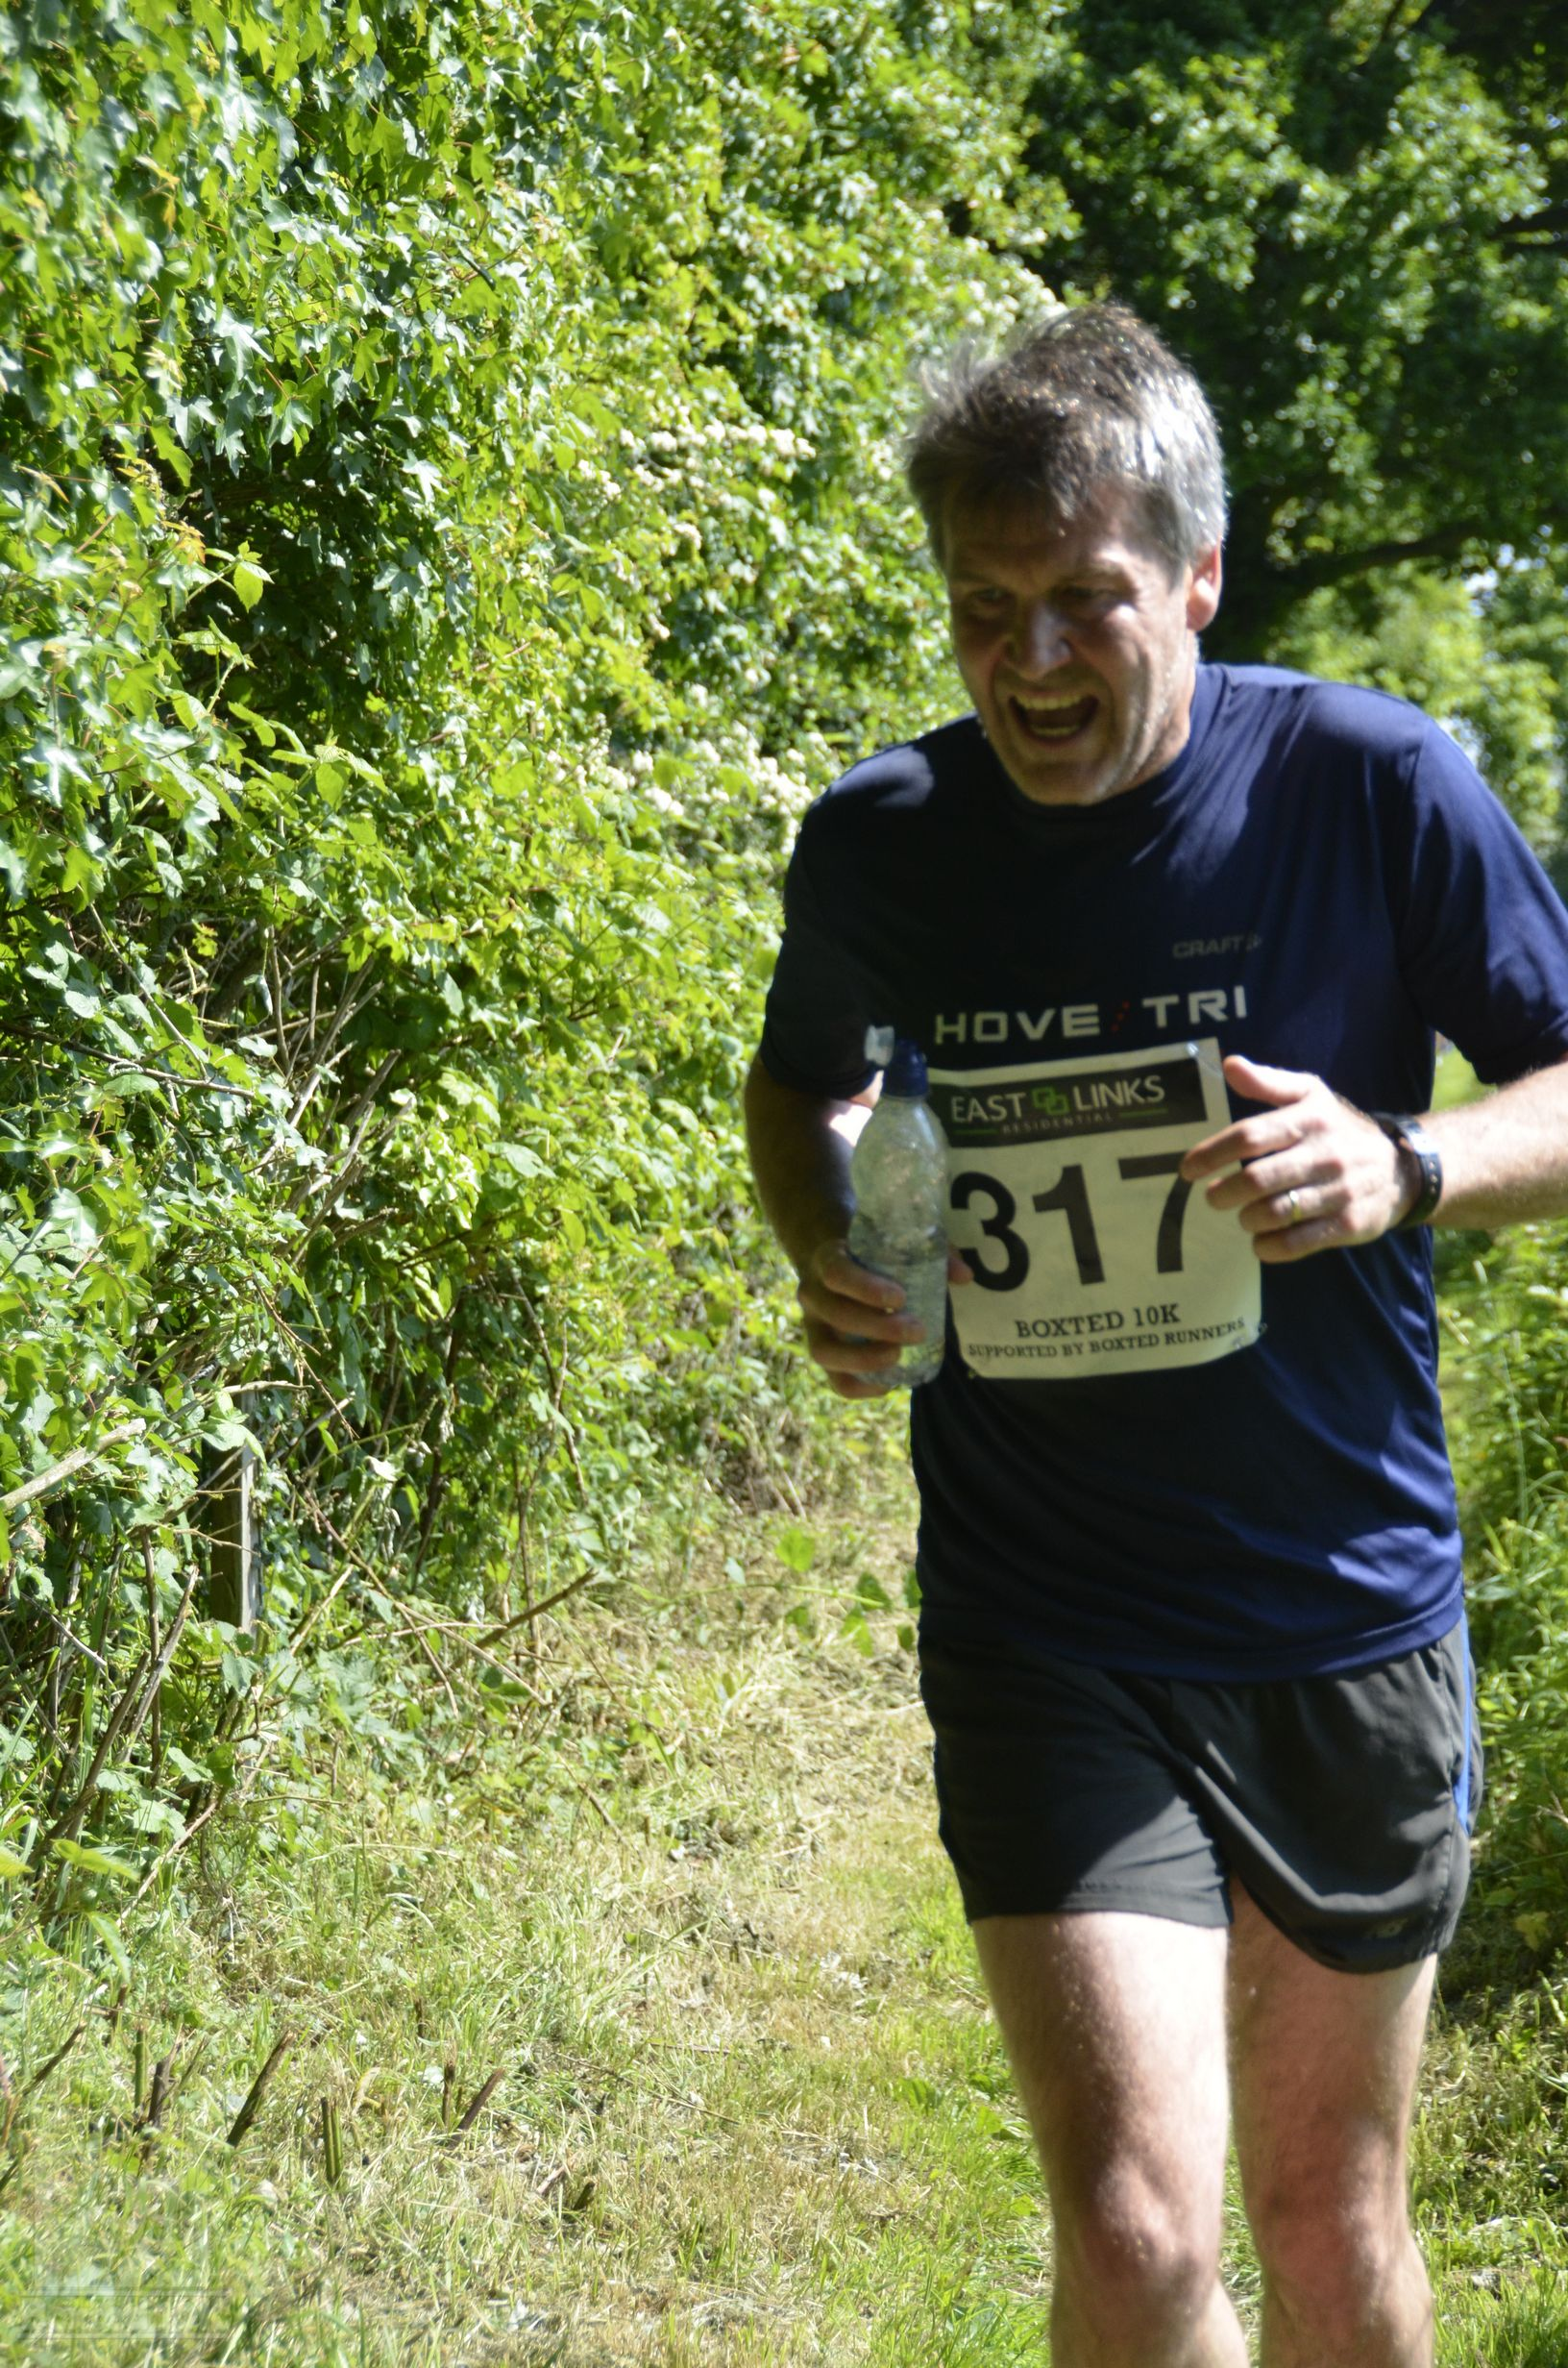 Boxted10k-00183